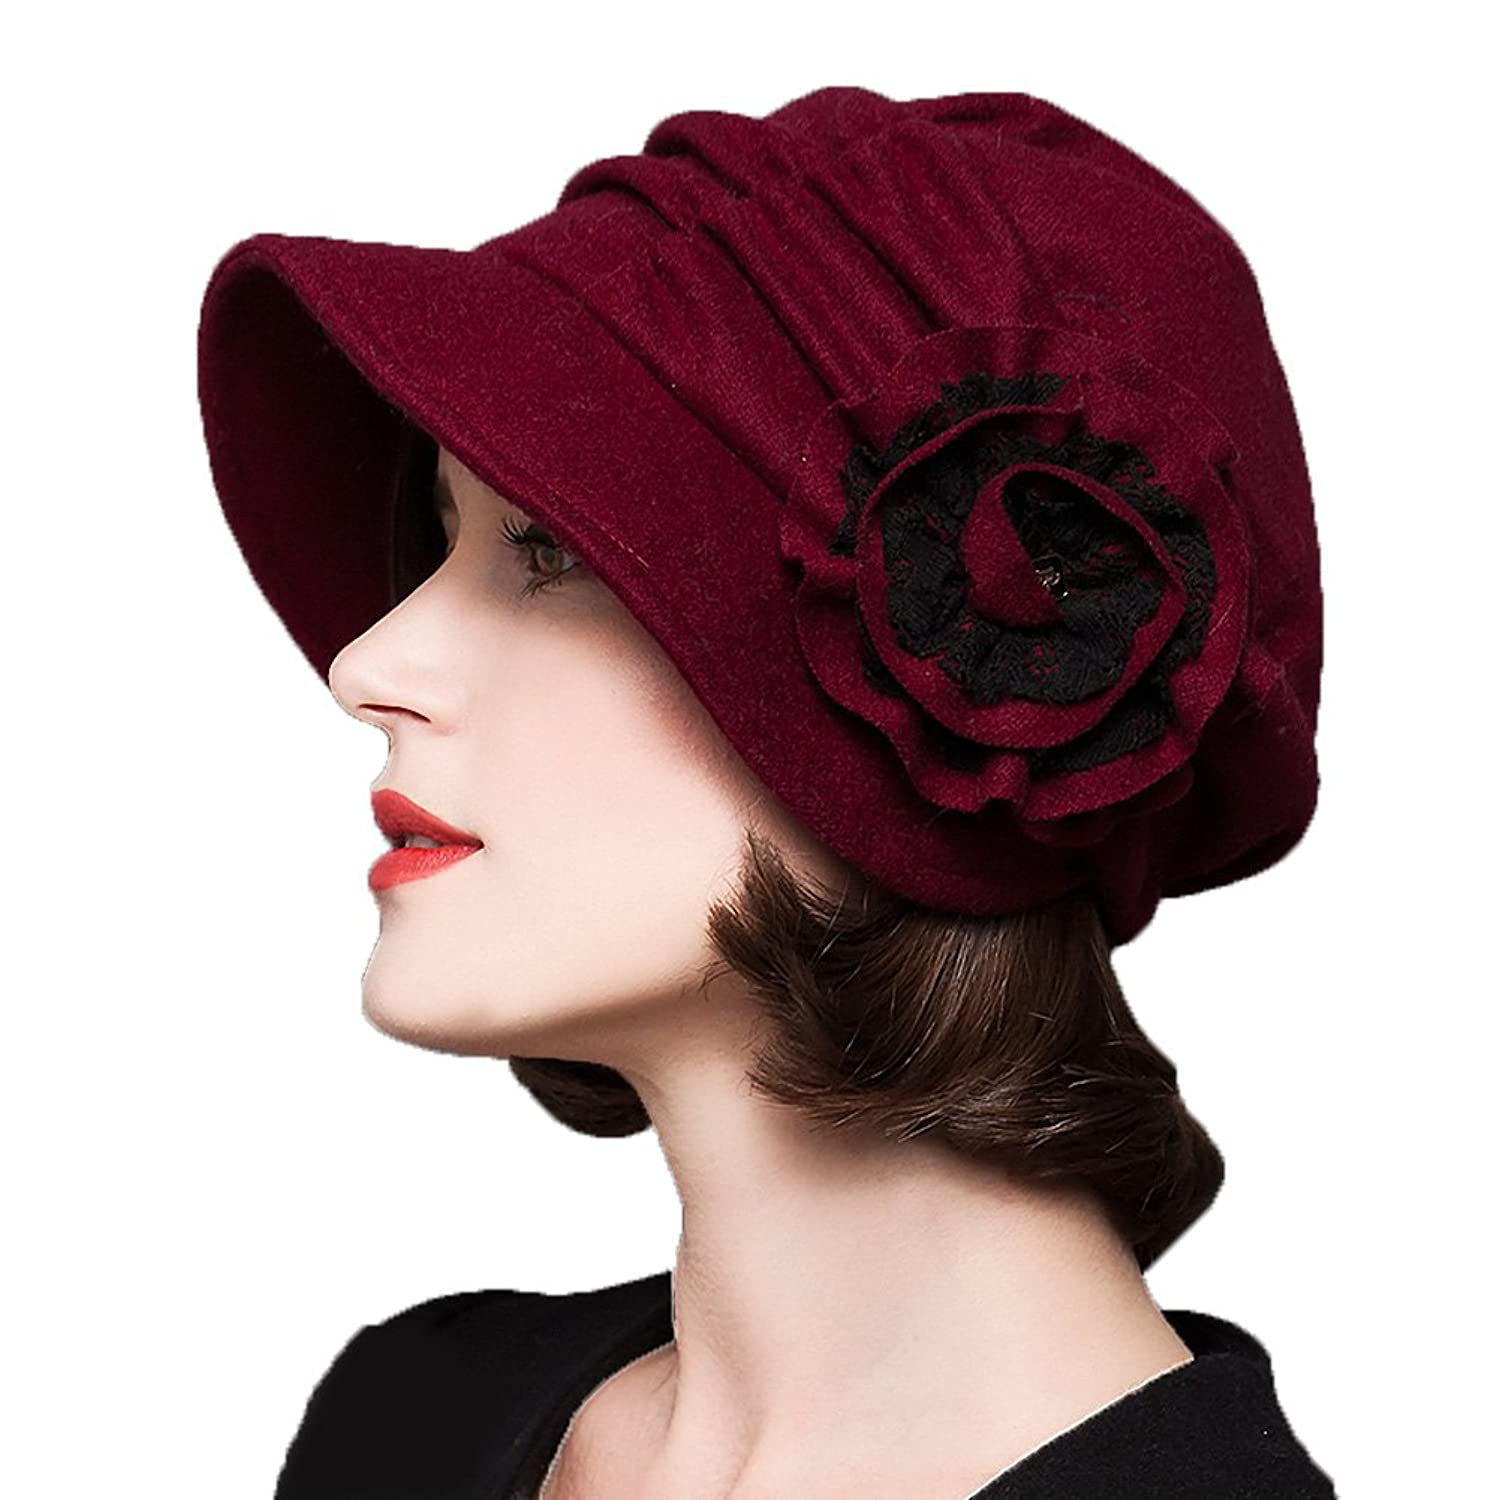 1900s, 1910s, WW1, Titanic Costumes Decorative Flowers Wool Beret Maitose Trade Womens Decorative Flowers Wool Beret $28.40 AT vintagedancer.com